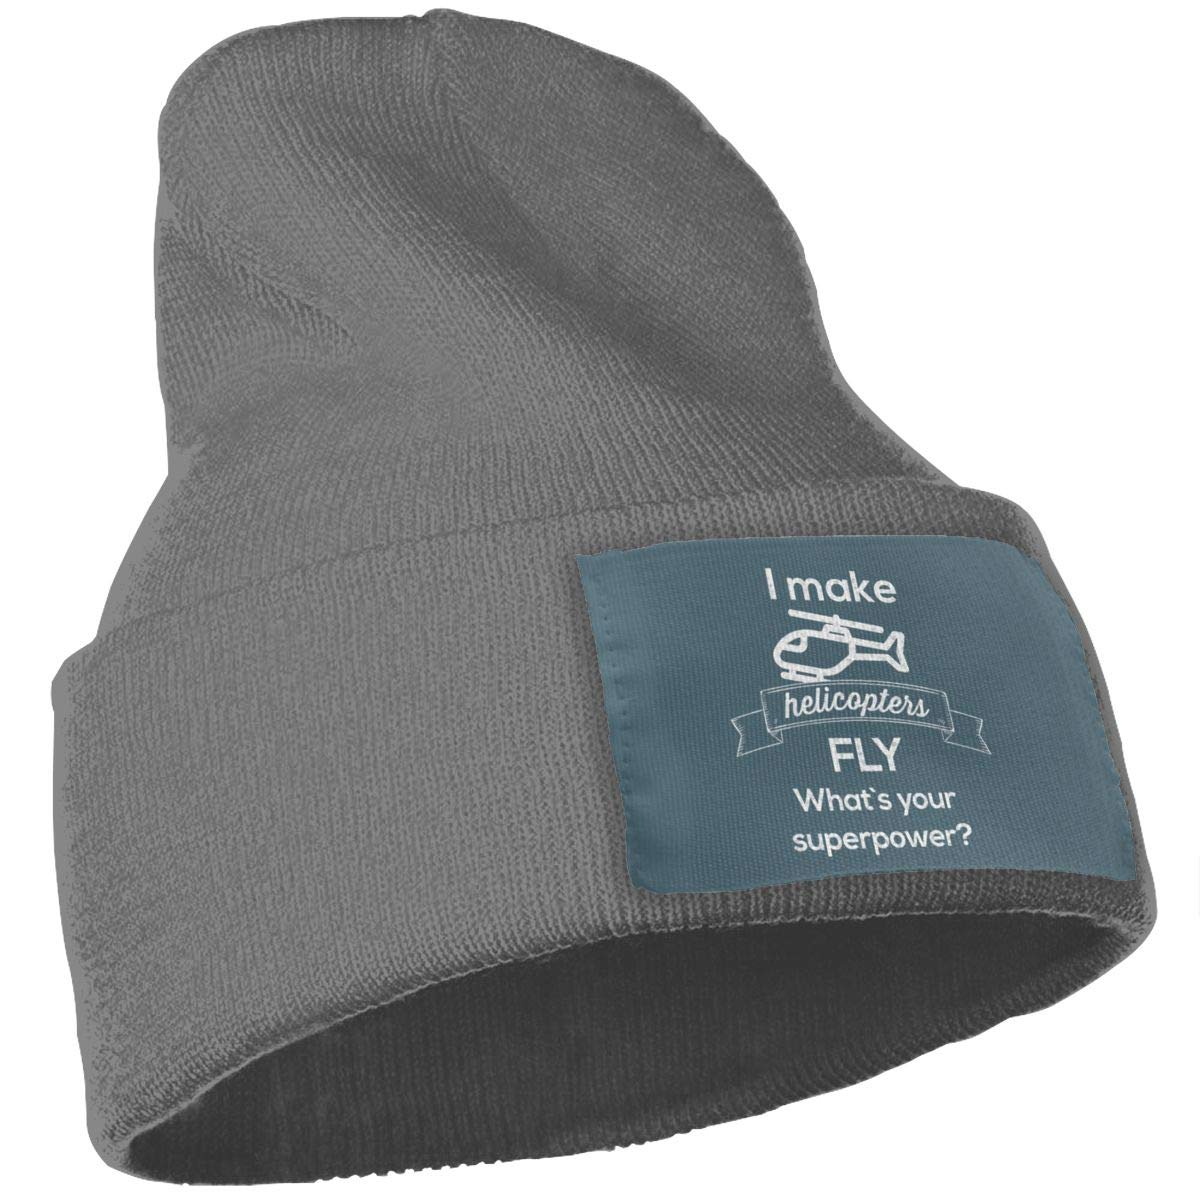 I Make Helicopters Fly Whats Your Superpower Wool Cap Ski Cap Unisex Winter Deep Heather